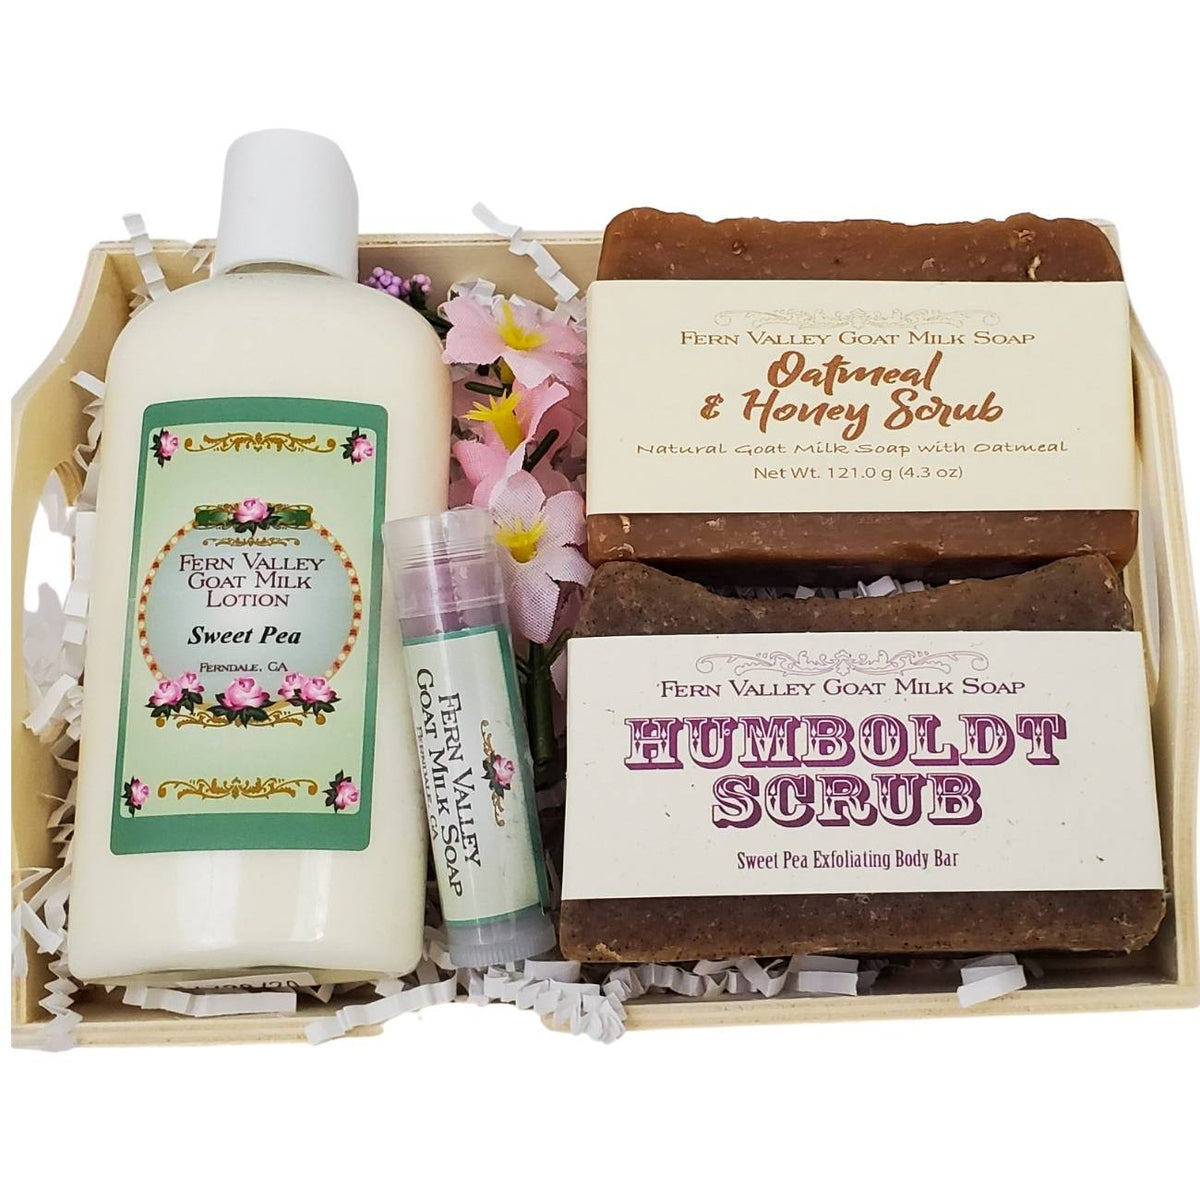 Adorable Gift Set | Handmade Goat Milk Soap & Lotion